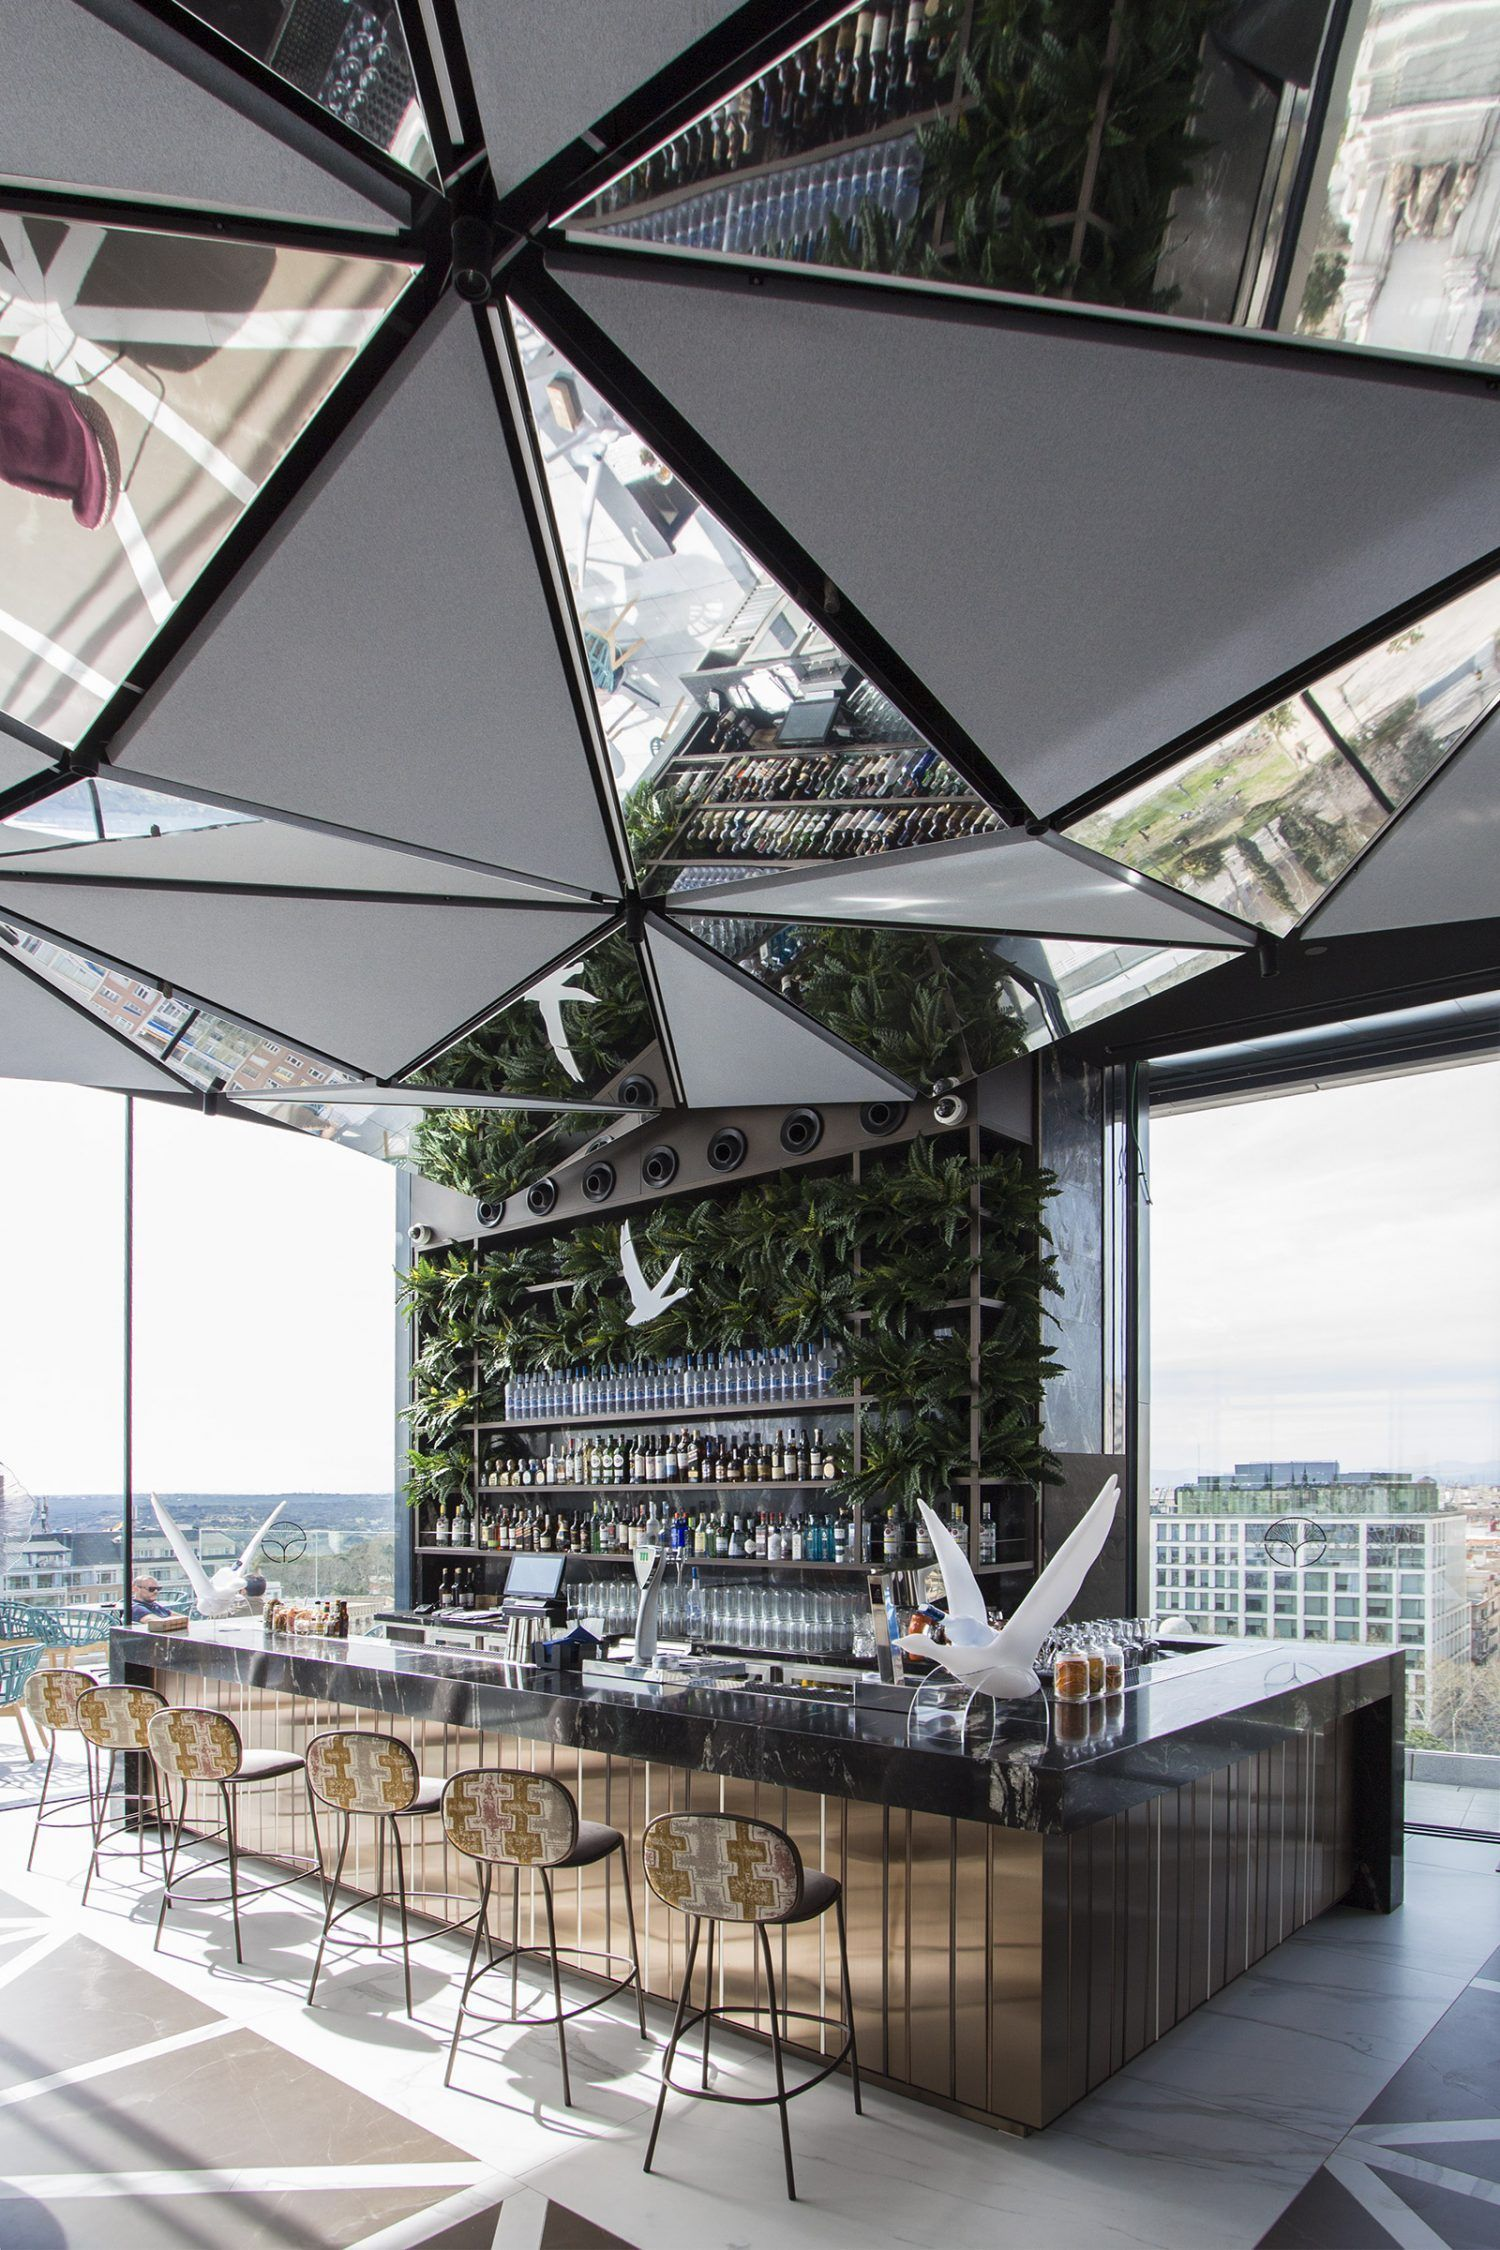 Find The Lighting Fixture That Will Inspire Your Next Interior Design Project Check Our Collection At Luxxu Net Hotel Bar Design Rooftop Bar Design Luxury Bar